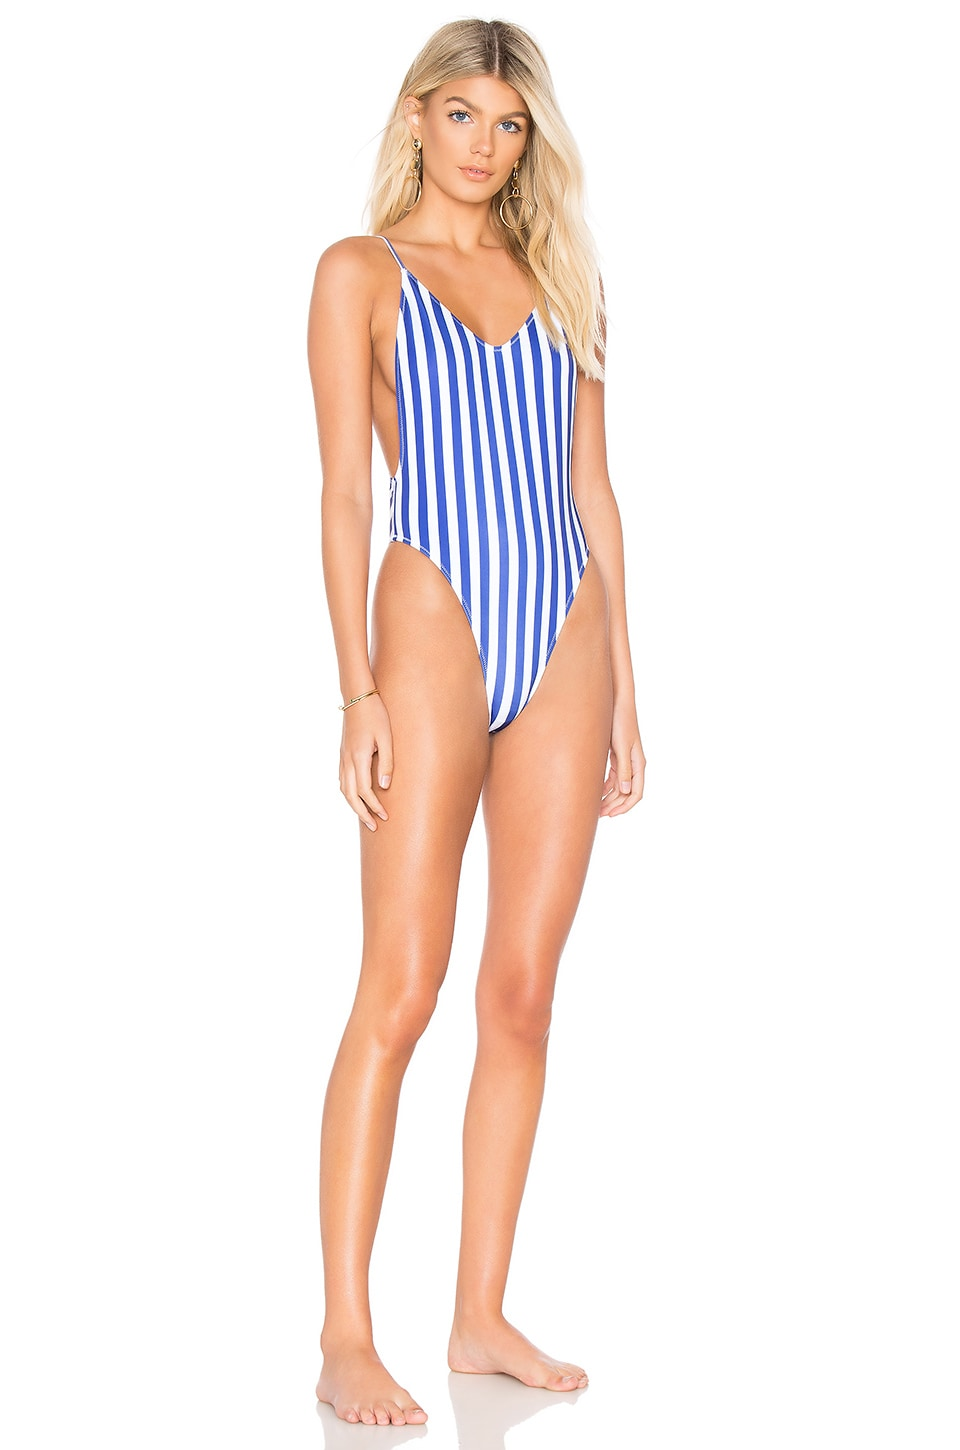 KENDALL + KYLIE x REVOLVE Classic One Piece in Royal Stripe